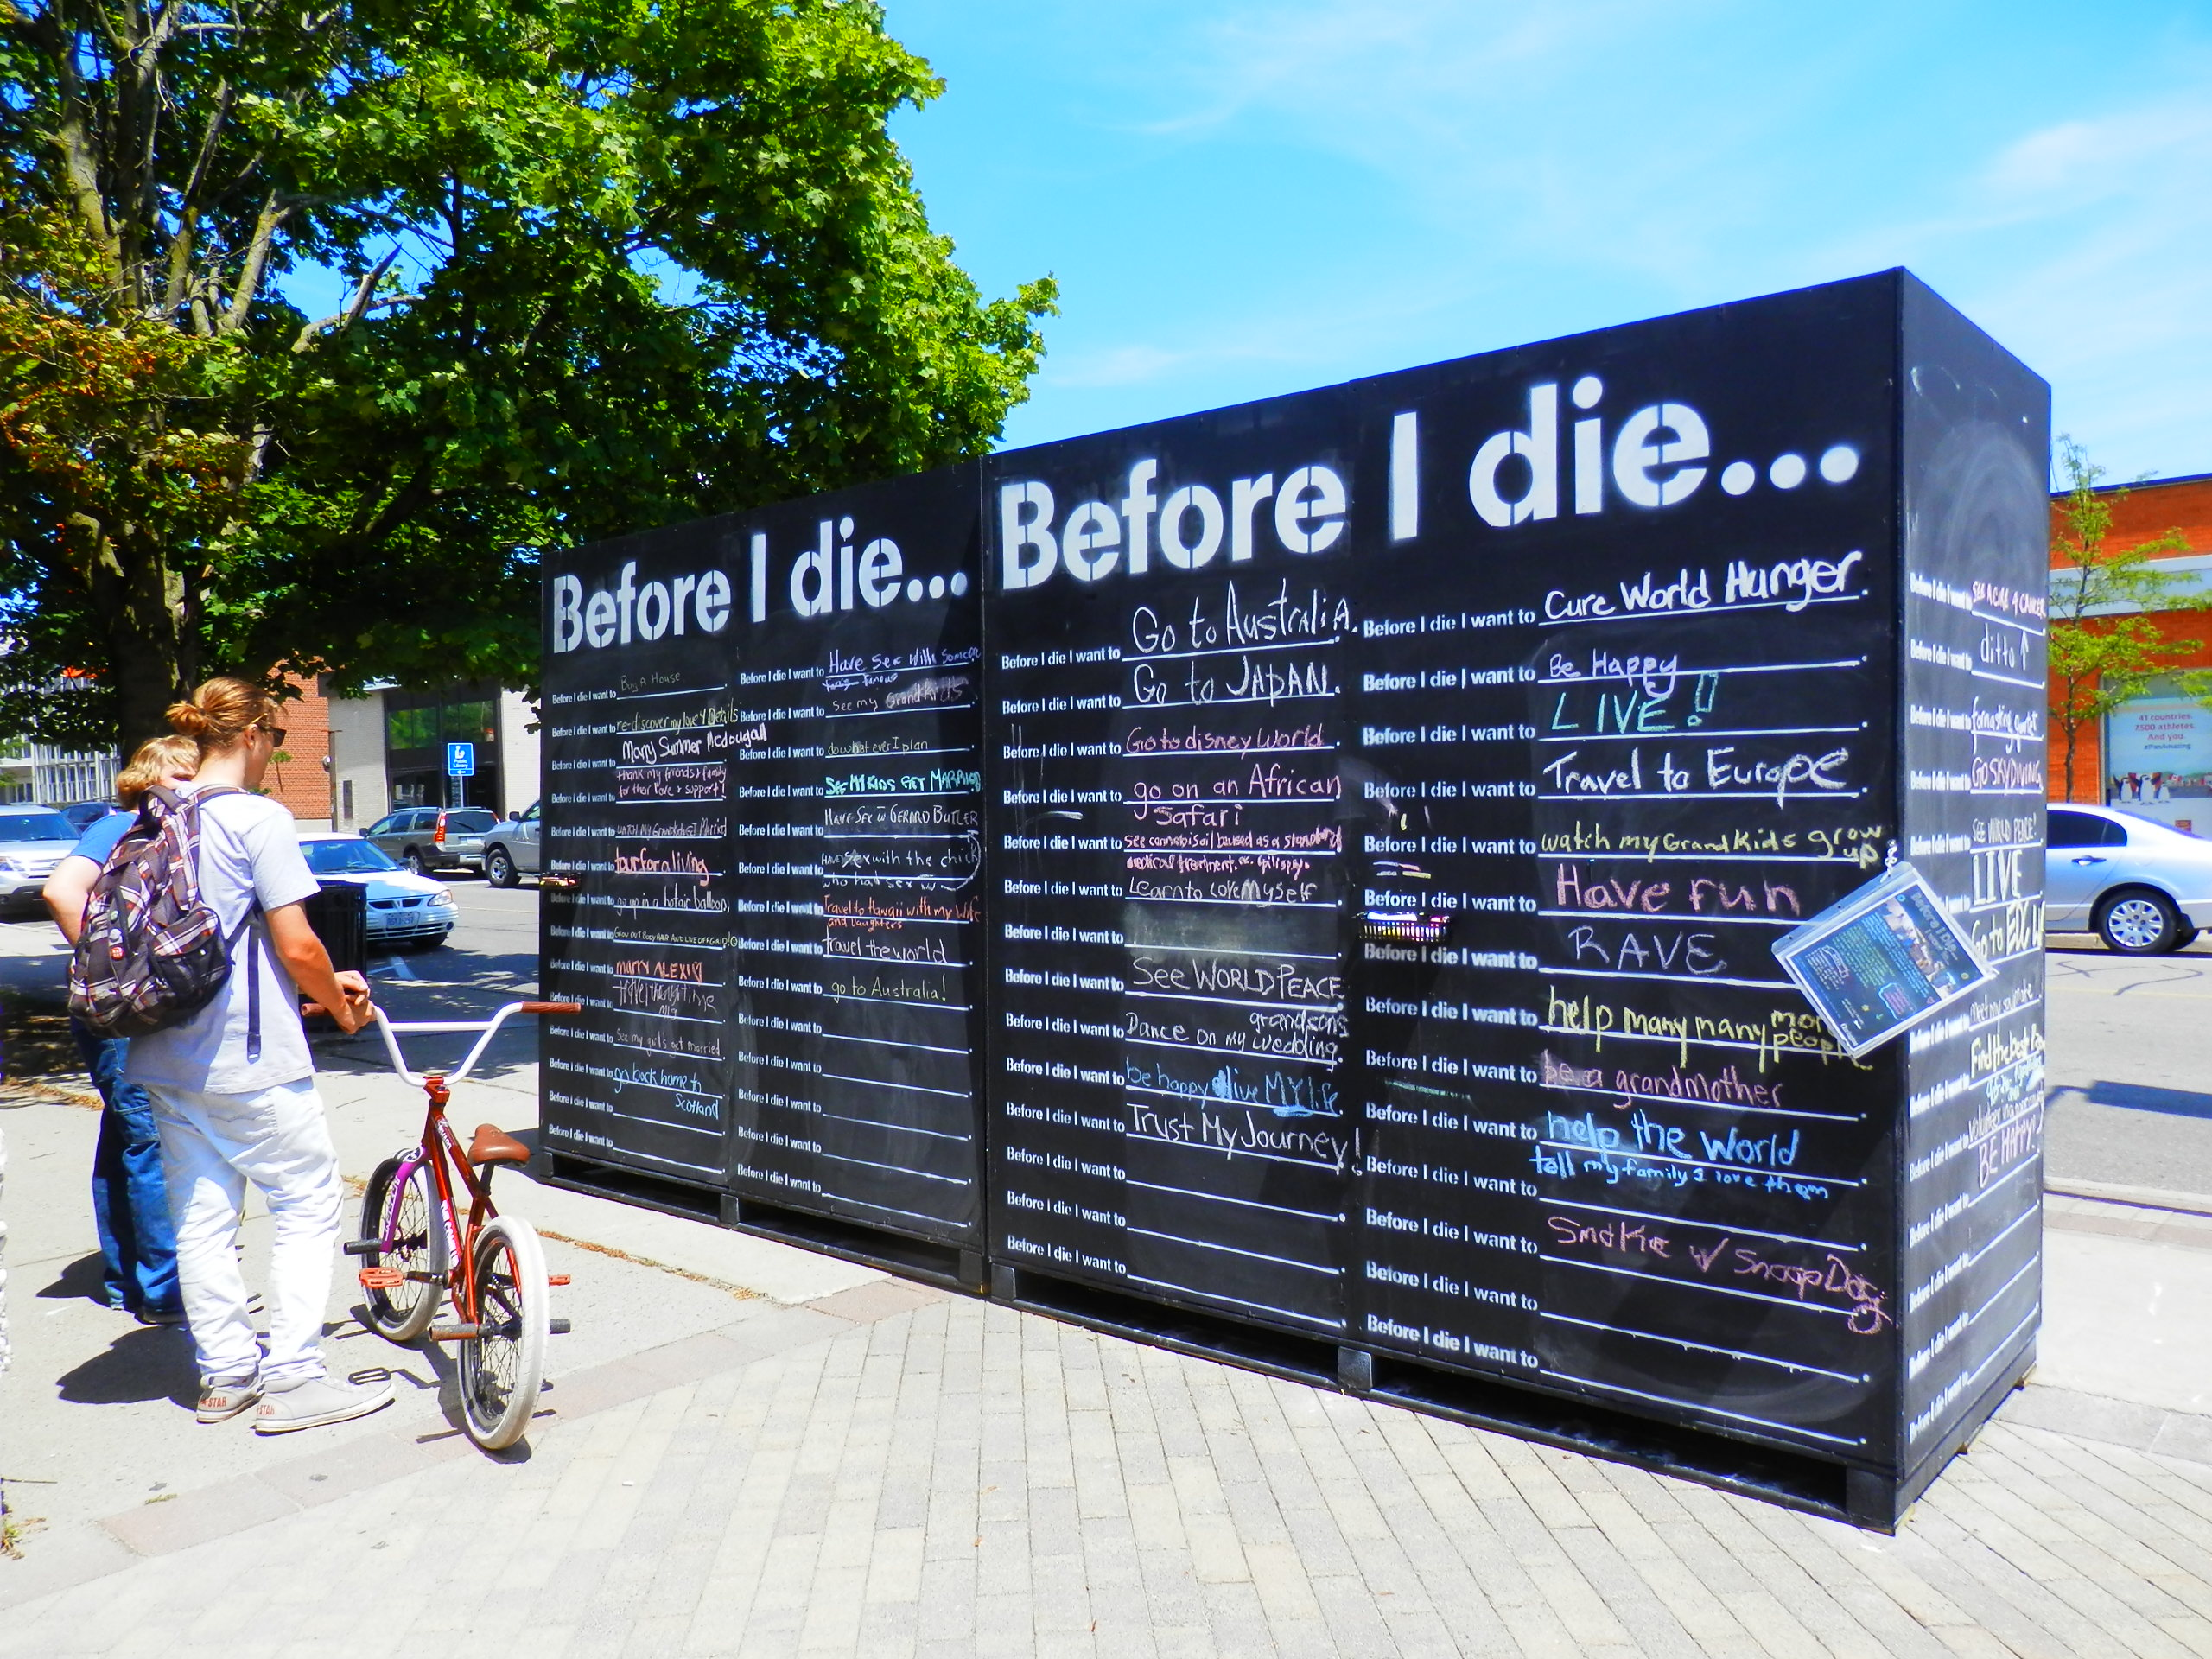 Before I Die Art Project